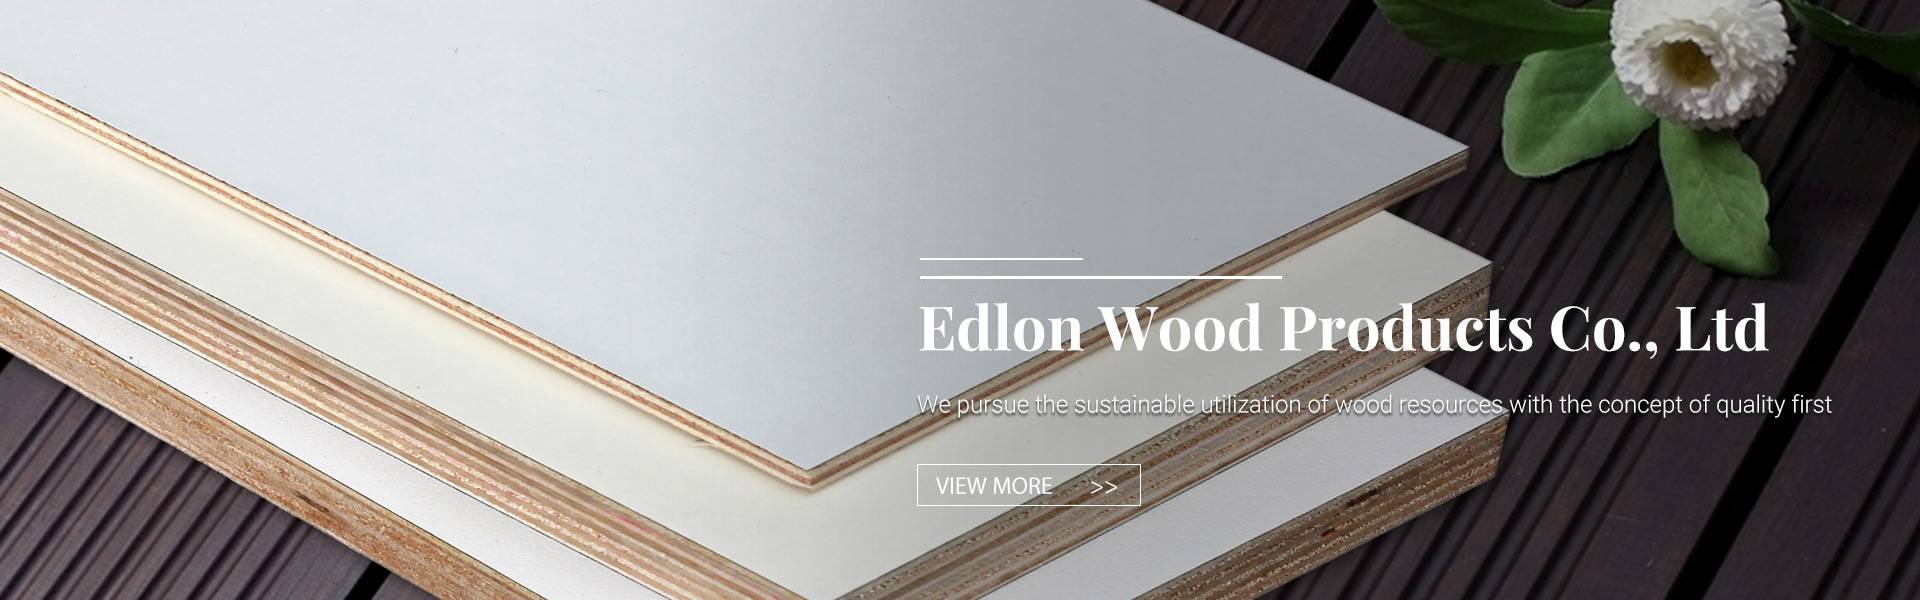 Edlon Wood Products Co., Ltd